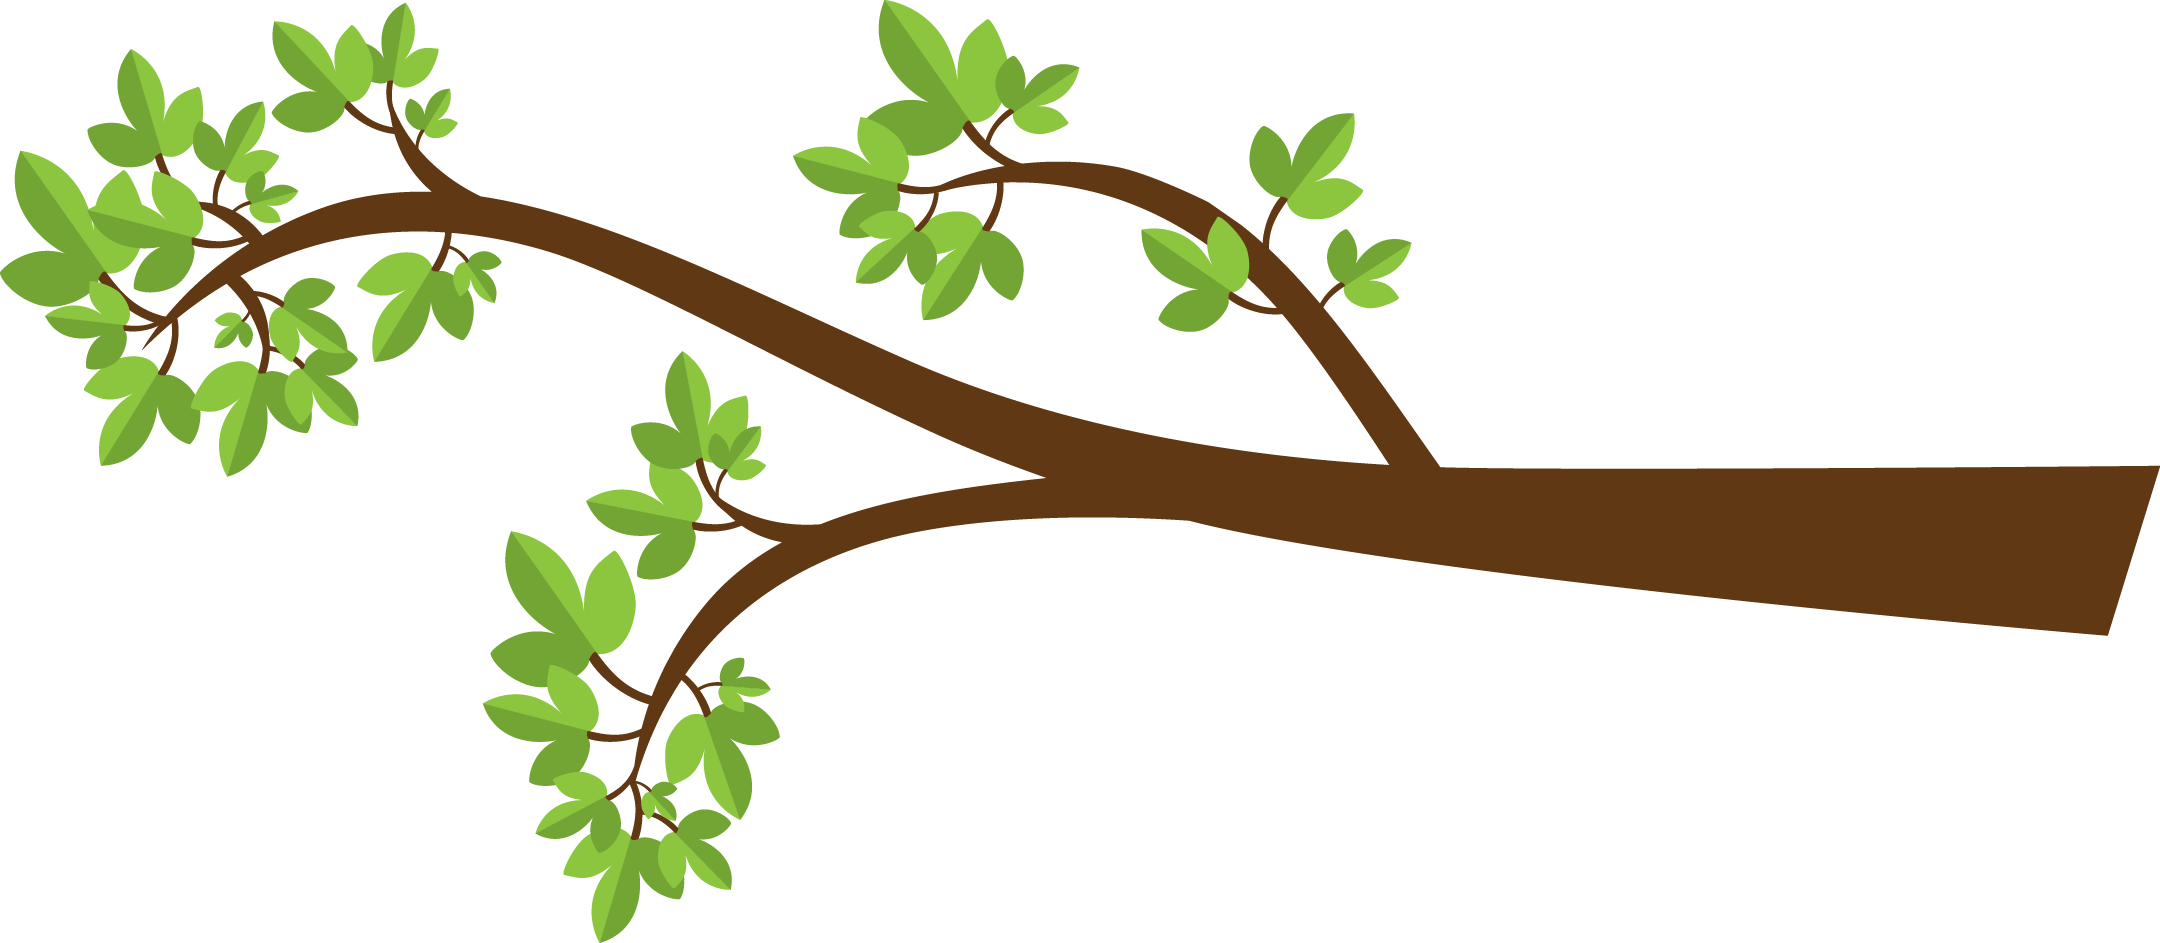 Free Green Branch Cliparts, Download Free Clip Art, Free.